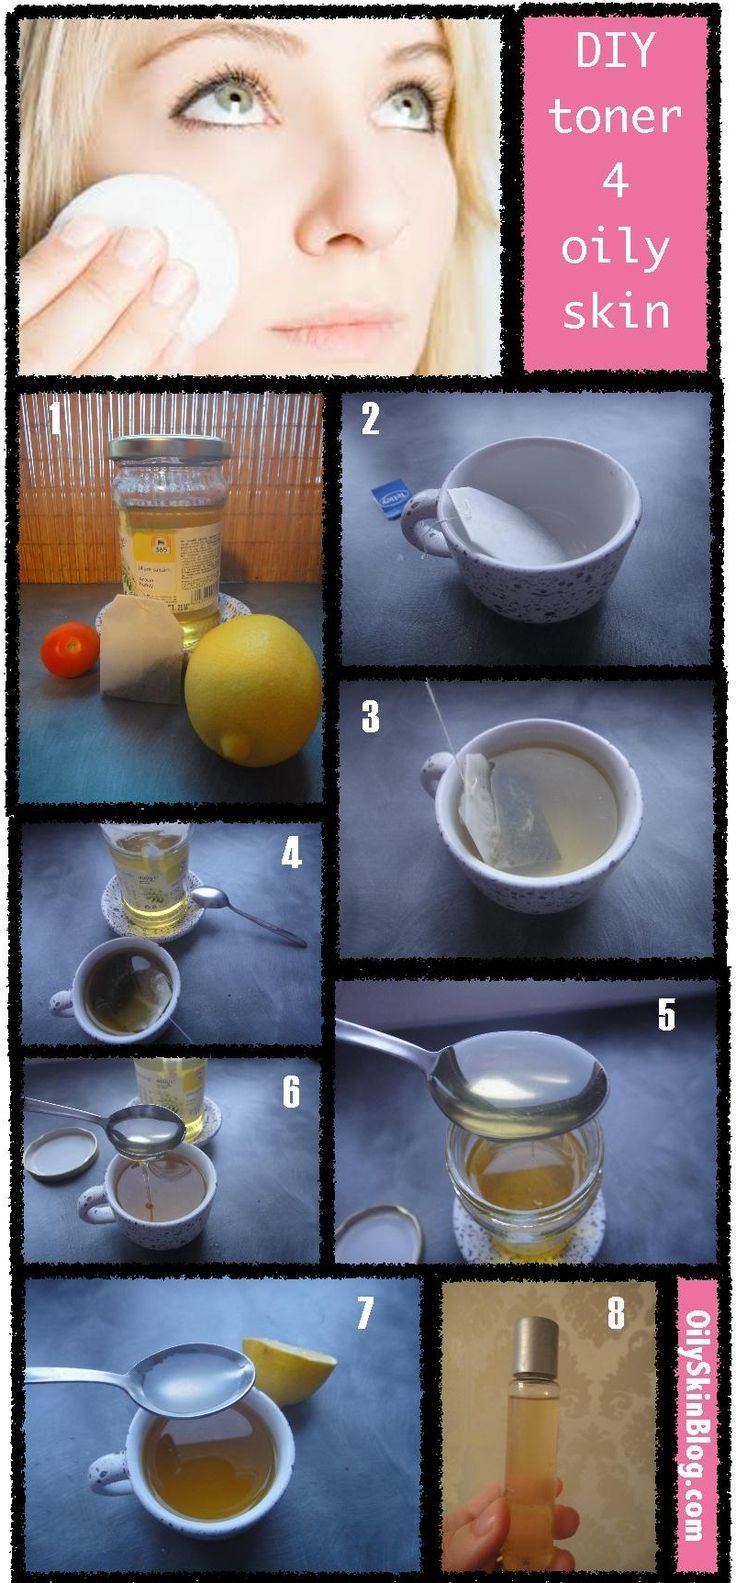 diy toner for oily skin.....this is certainly worth trying. I mean, if it works it will save me quite a bit of money :)